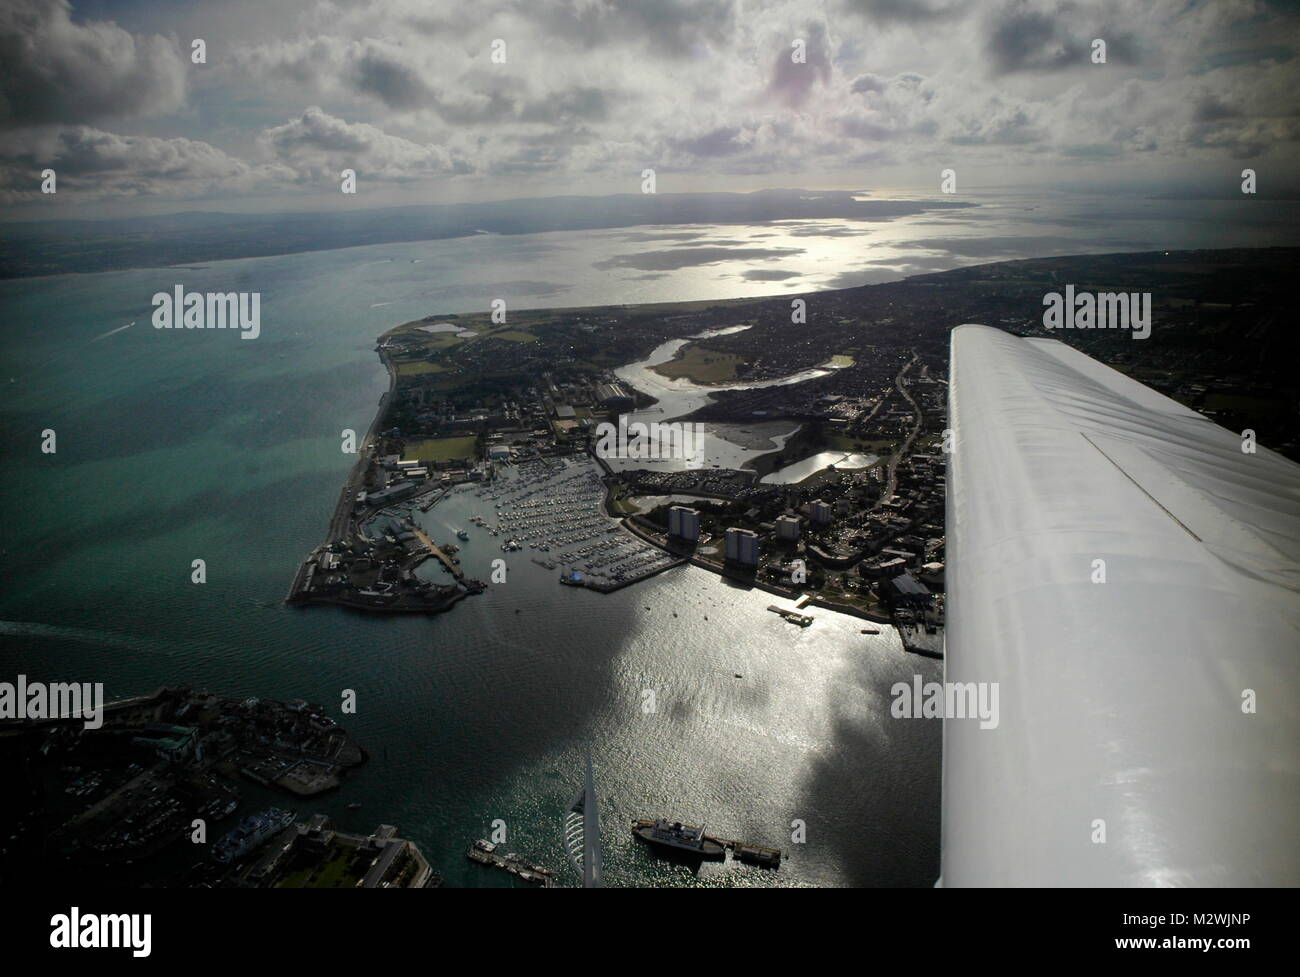 AJAXNETPHOTO. 24TH AUGUST, 2011. PORTSMOUTH, ENGLAND. - THE SOLENT - LOOKING WEST OVER A GLISTENING SOLENT. THE - Stock Image